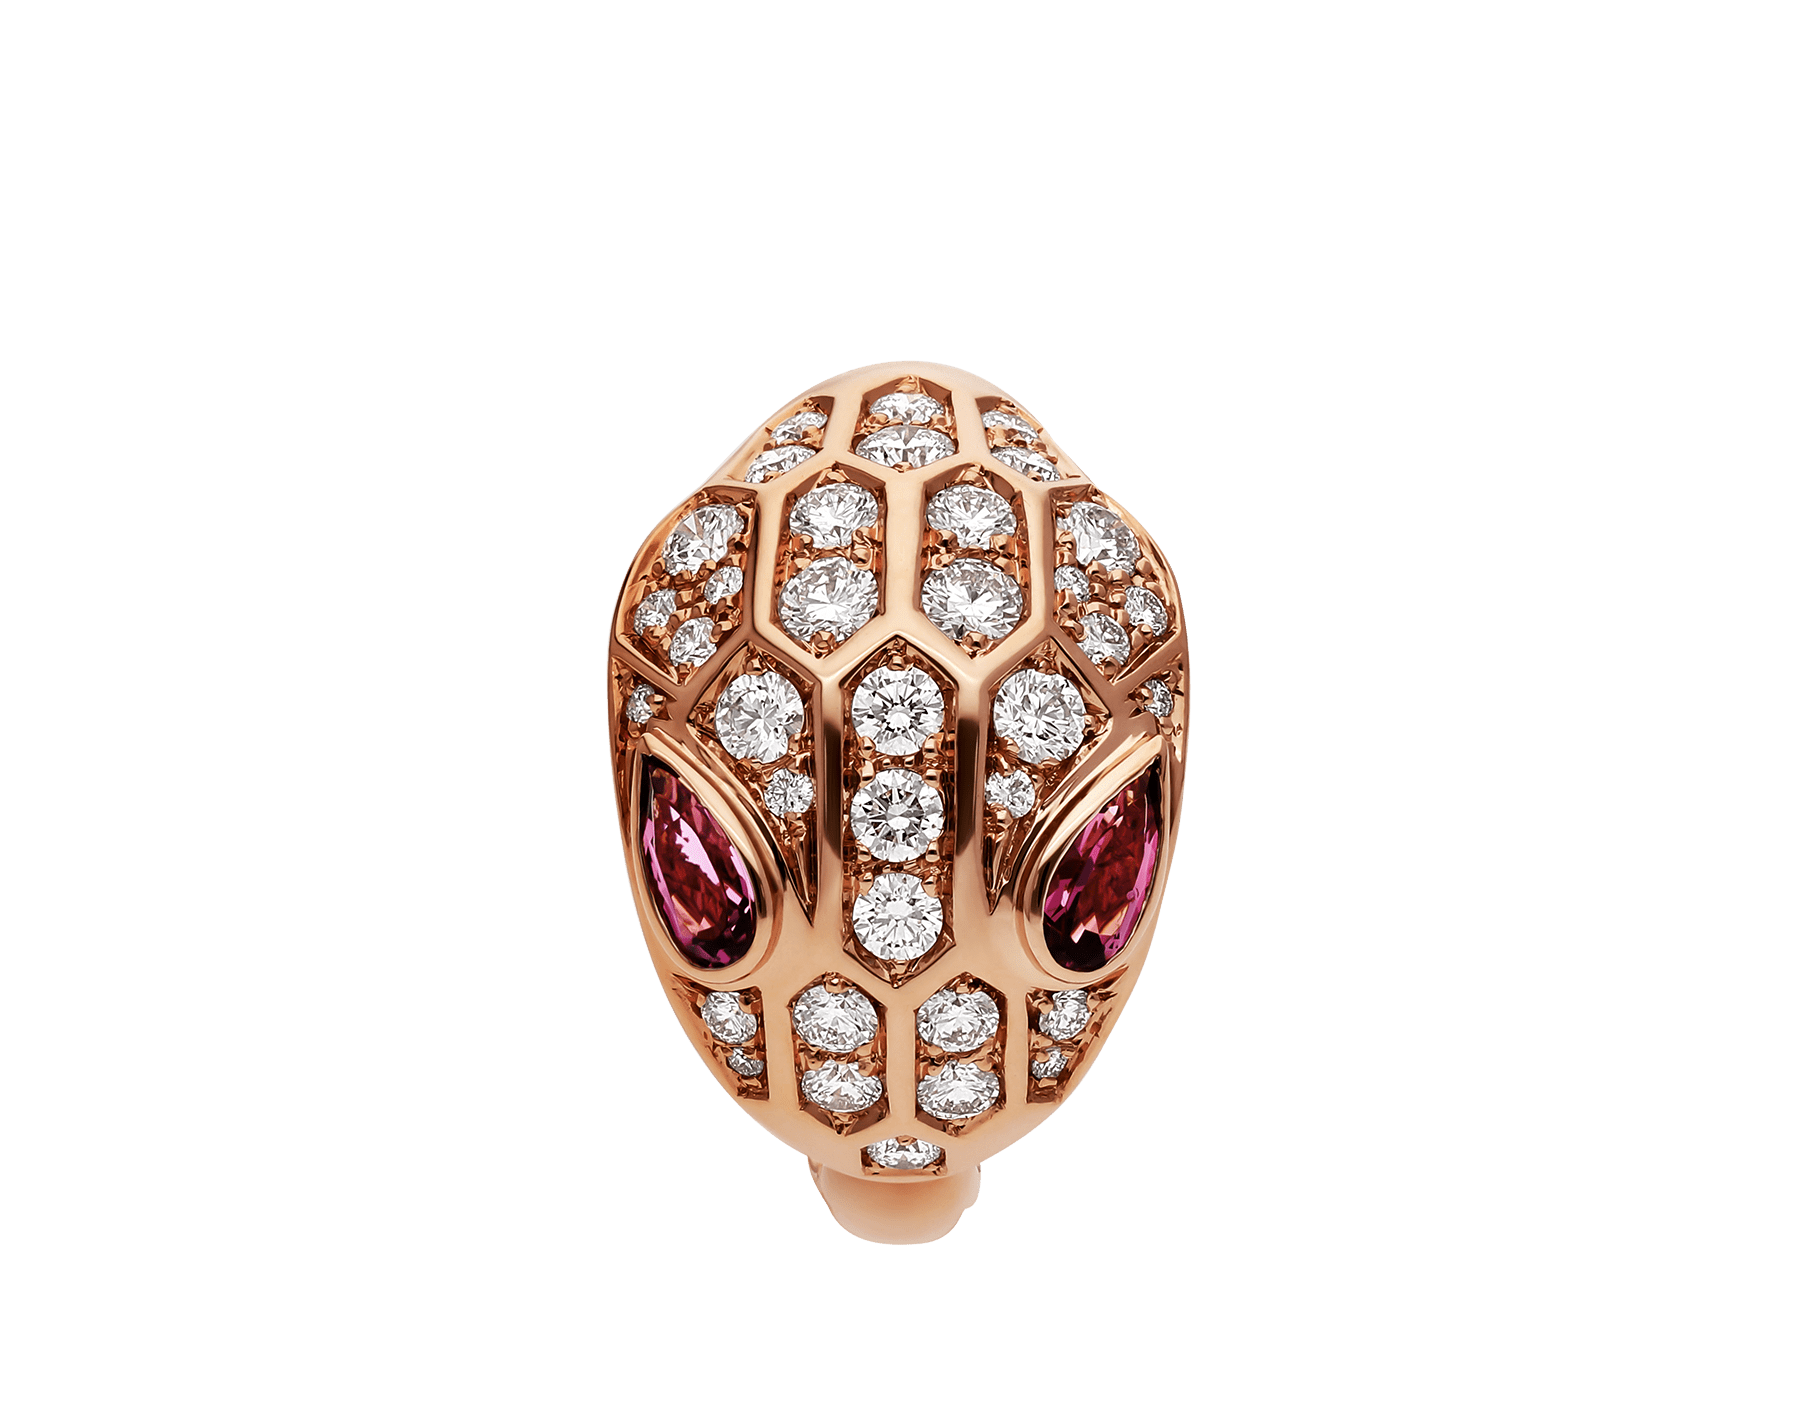 Serpenti ring in 18 kt rose gold, set with rubellite eyes and full pavé diamonds. AN857806 image 2